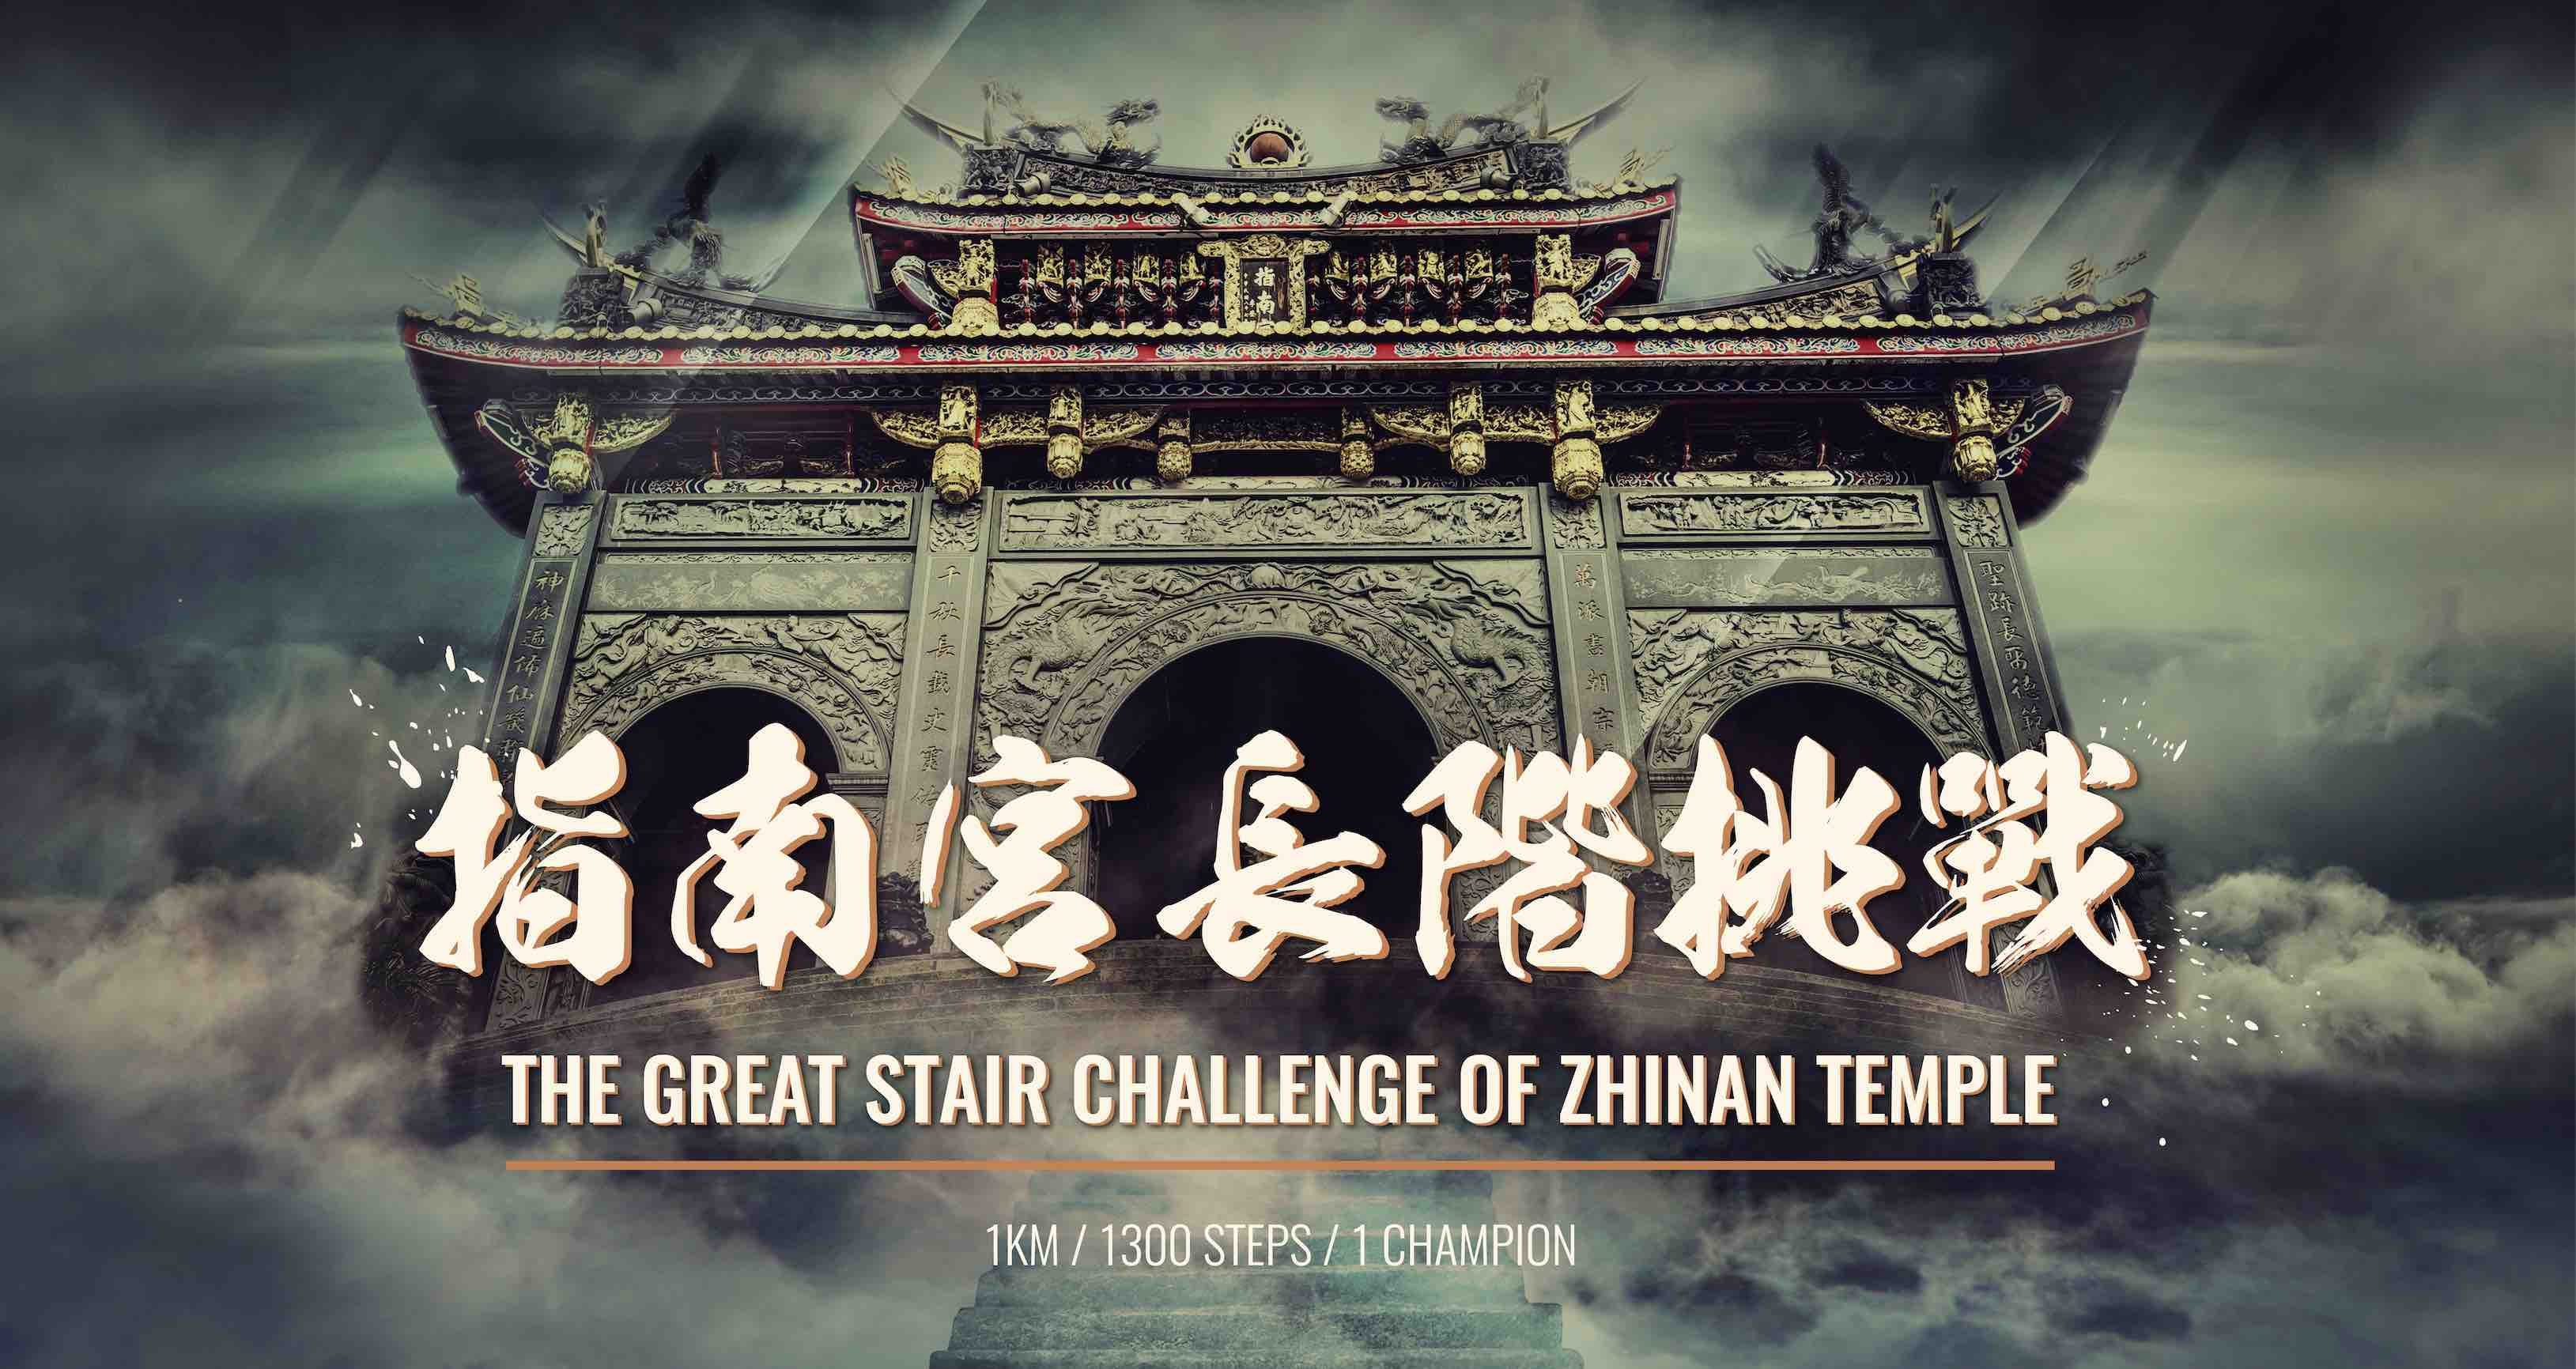 zhinan temple background